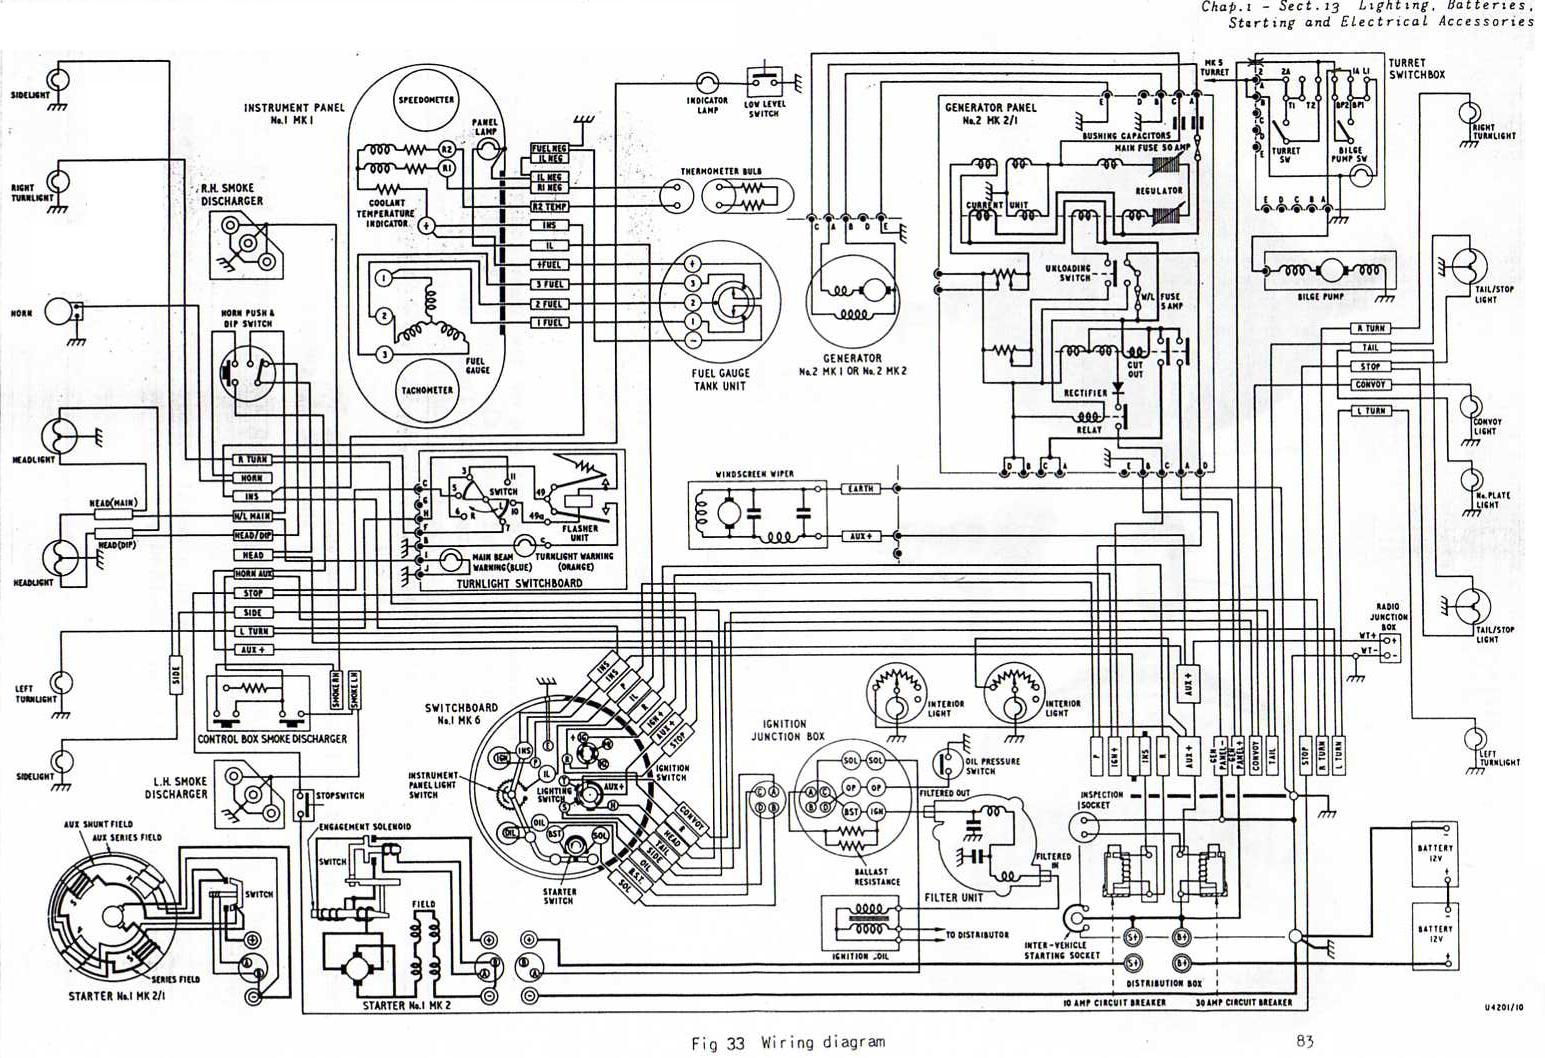 1969_wiring_diagram wiring diagram for heat pump system the wiring diagram york rooftop unit wiring diagram at creativeand.co